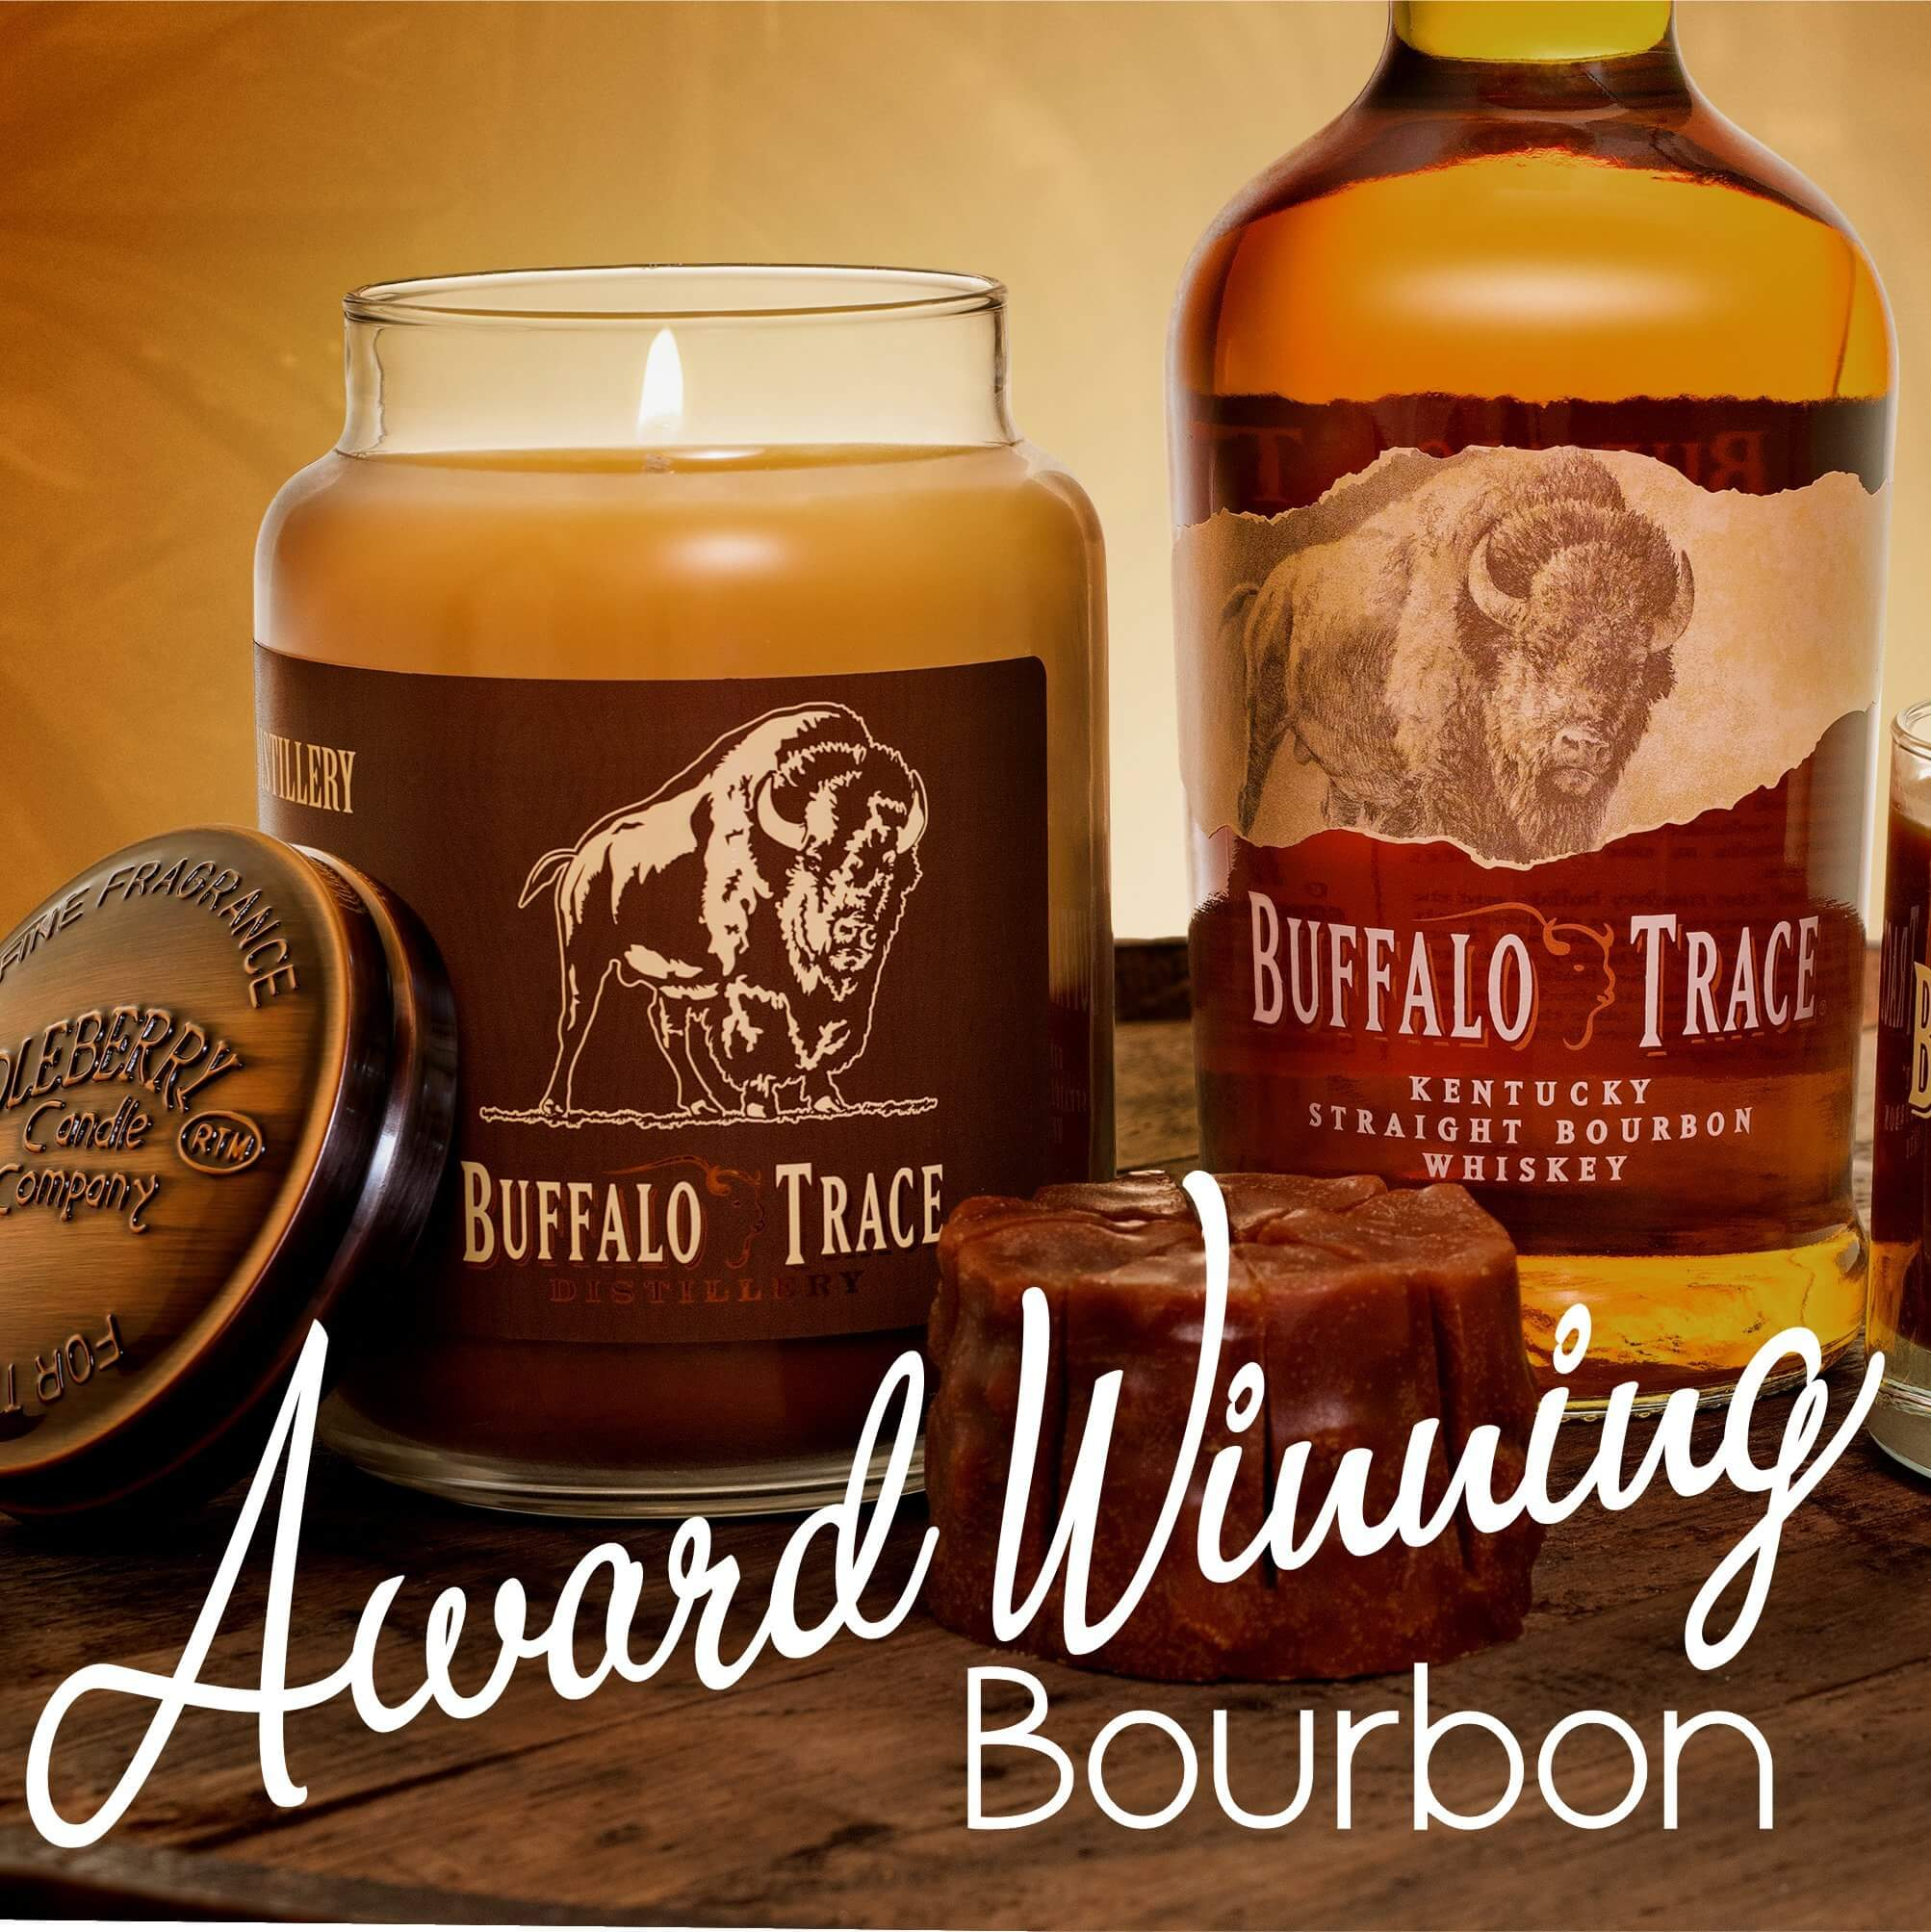 Buffalo Trace Bourbon Scented Candles